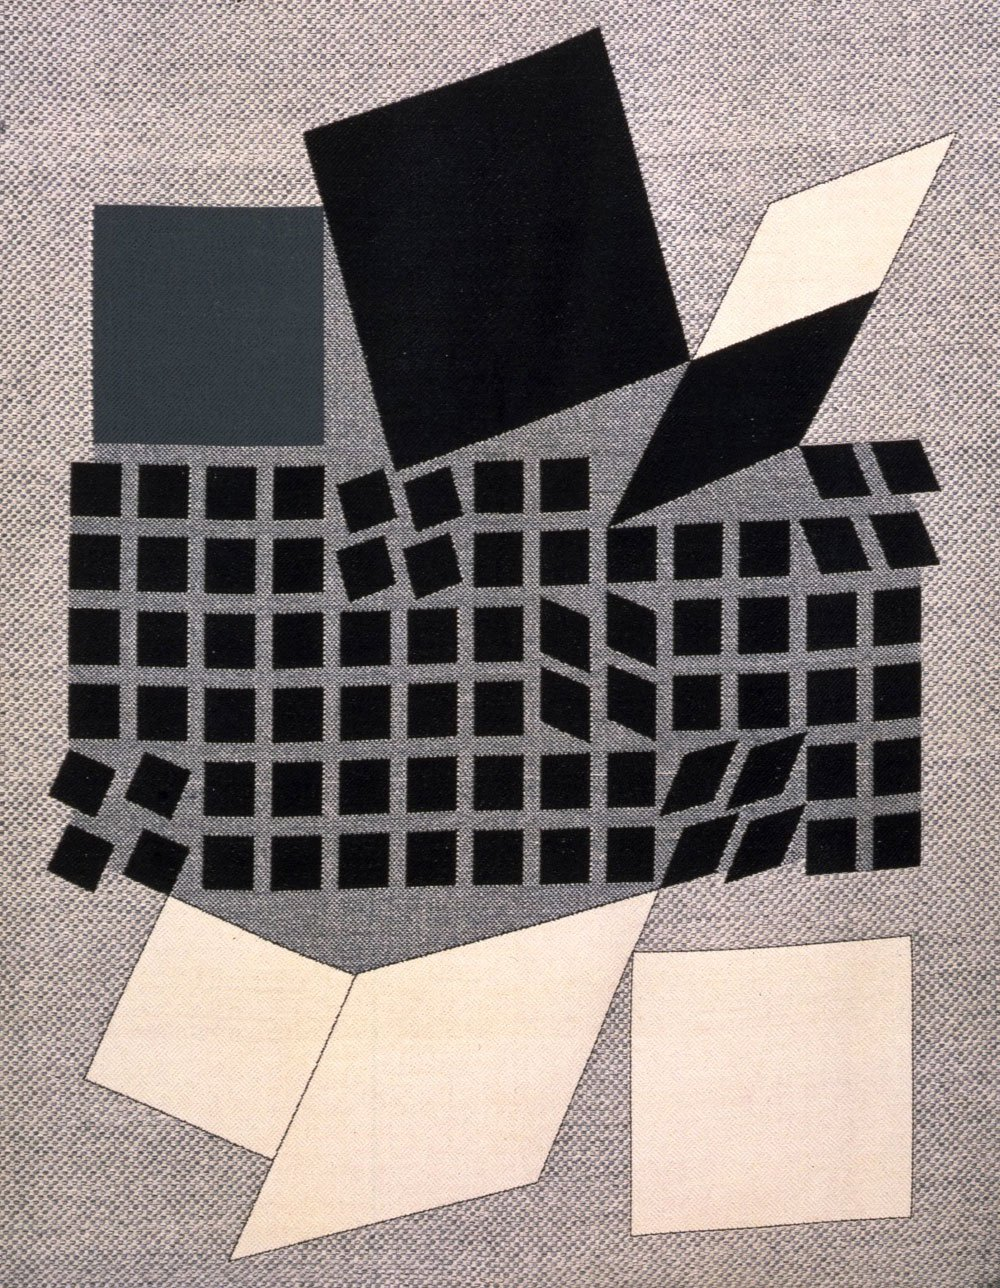 oeta-victor-vasarely-1962-edinburgh-weavers-textiles-geometric-abstract-black-white-squares-va.jpg